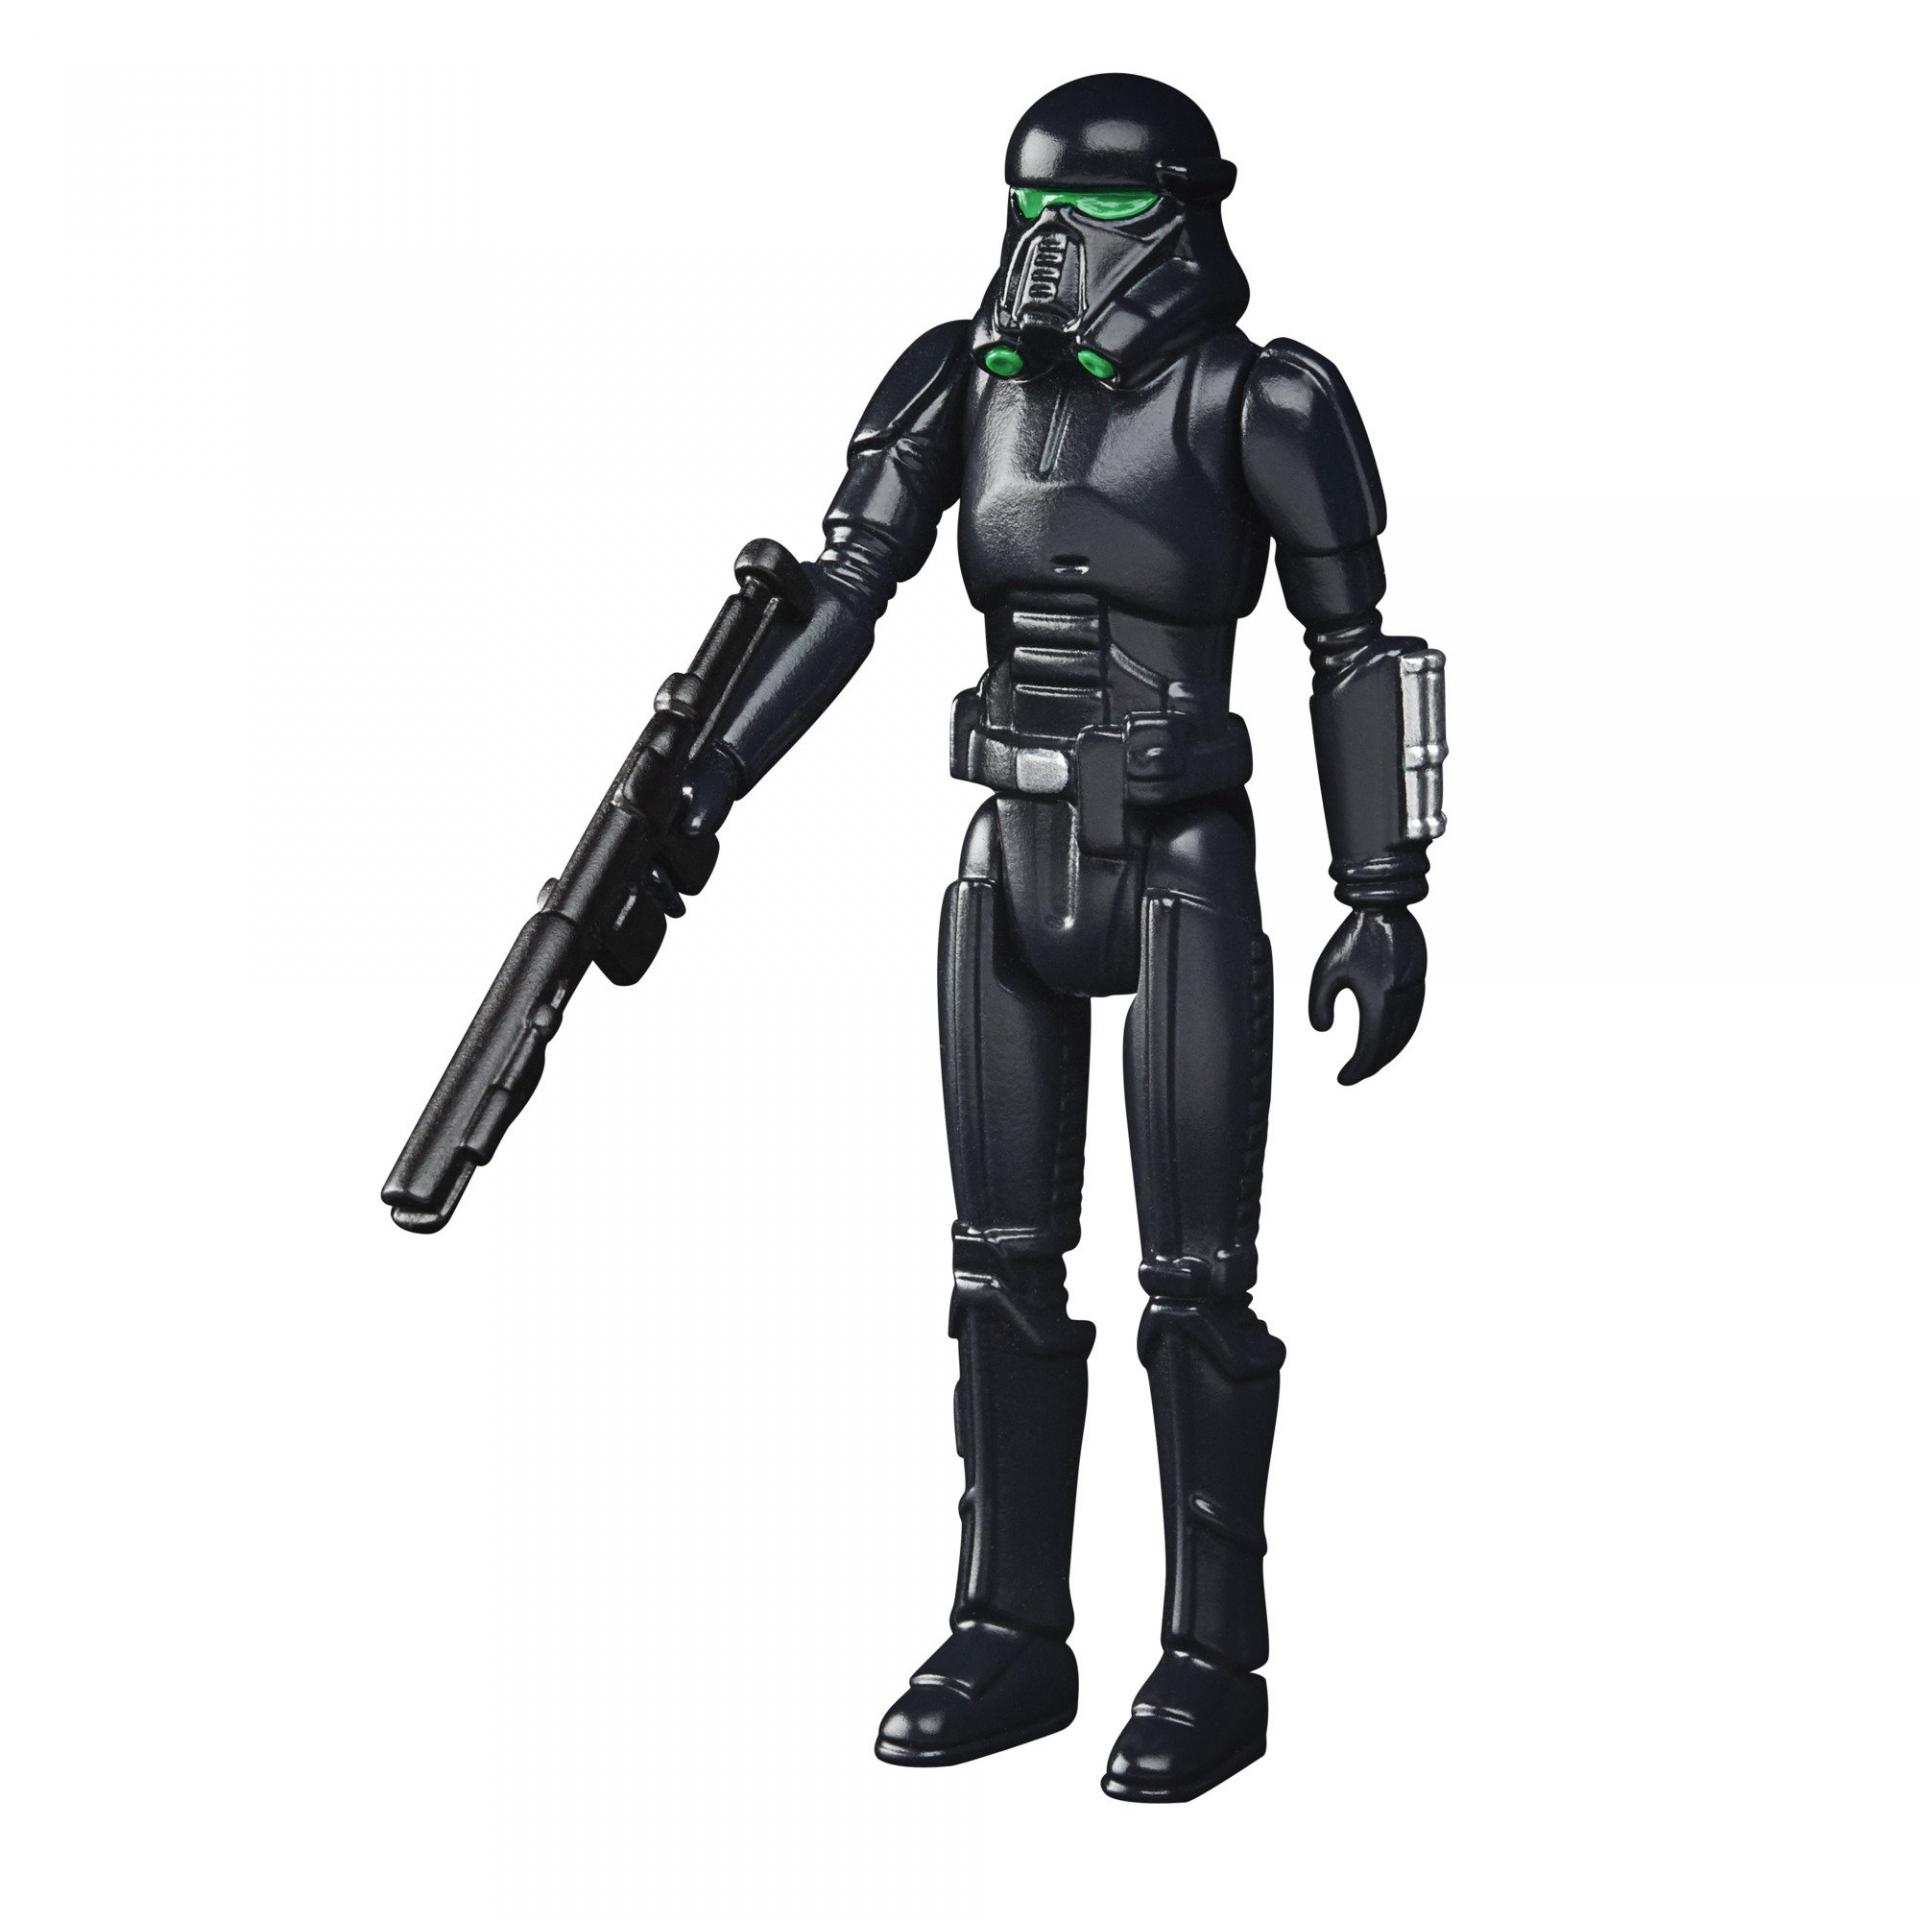 Tar wars the retro collection the mandalorian imperial death trooper4